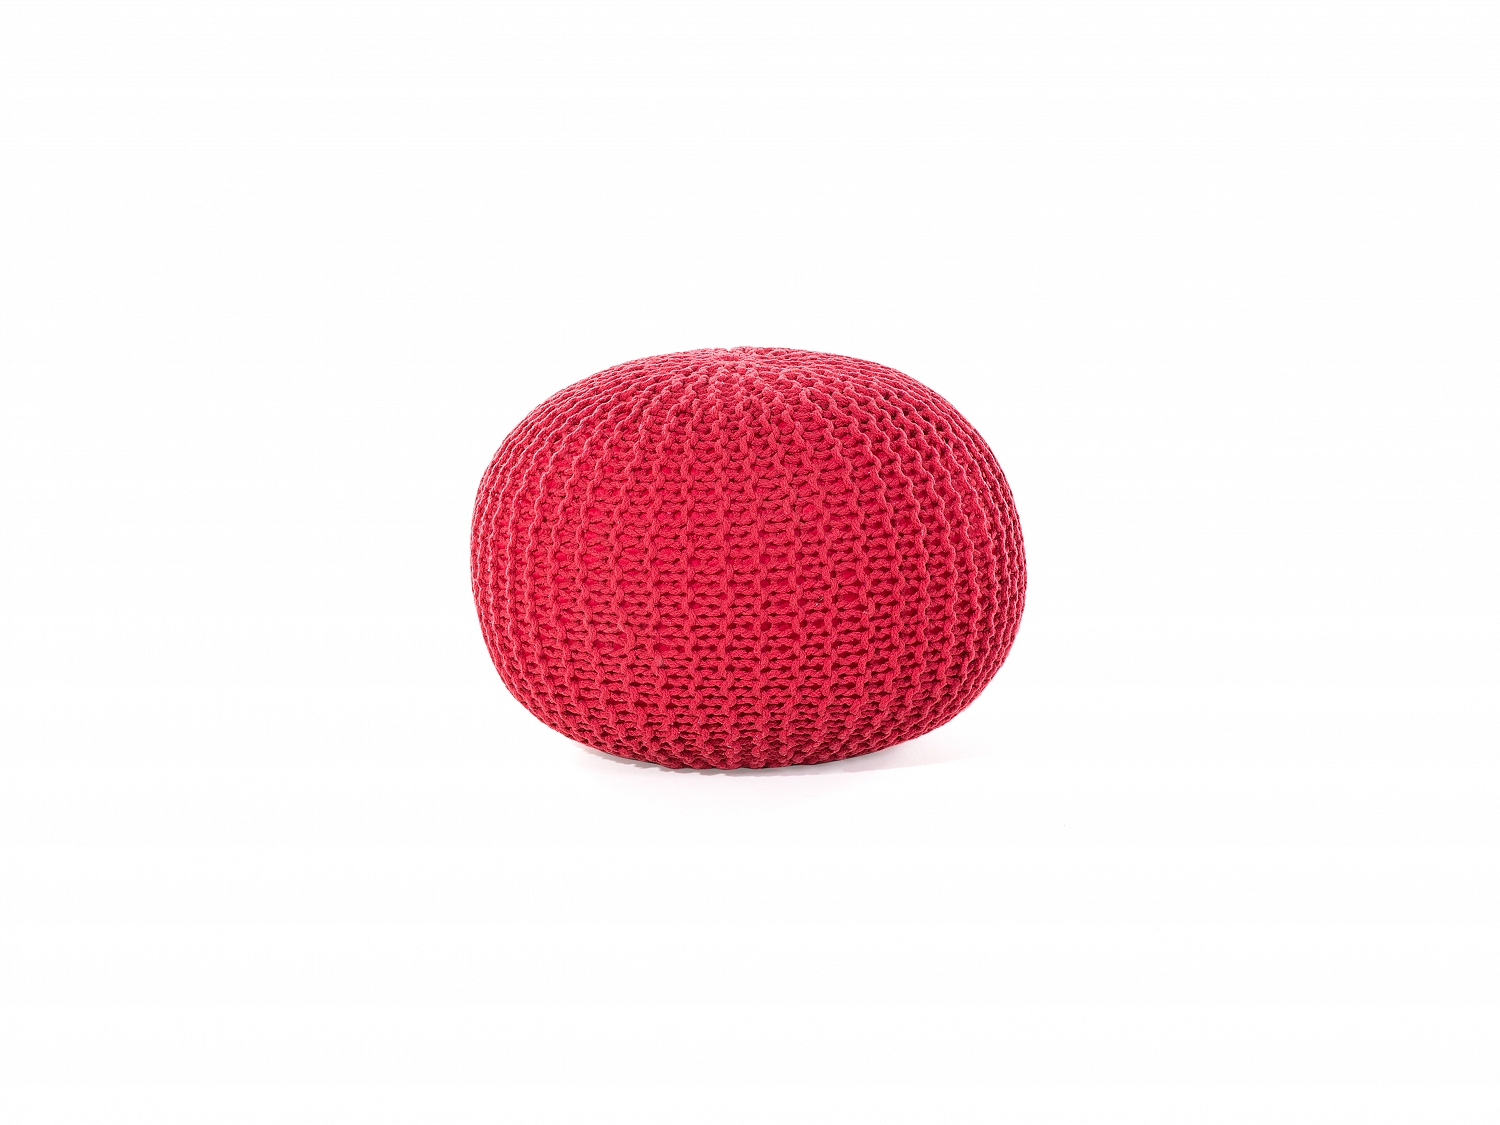 pouf coussin de sol pouf rouge petit pouf petit coussin de sol salon ebay. Black Bedroom Furniture Sets. Home Design Ideas